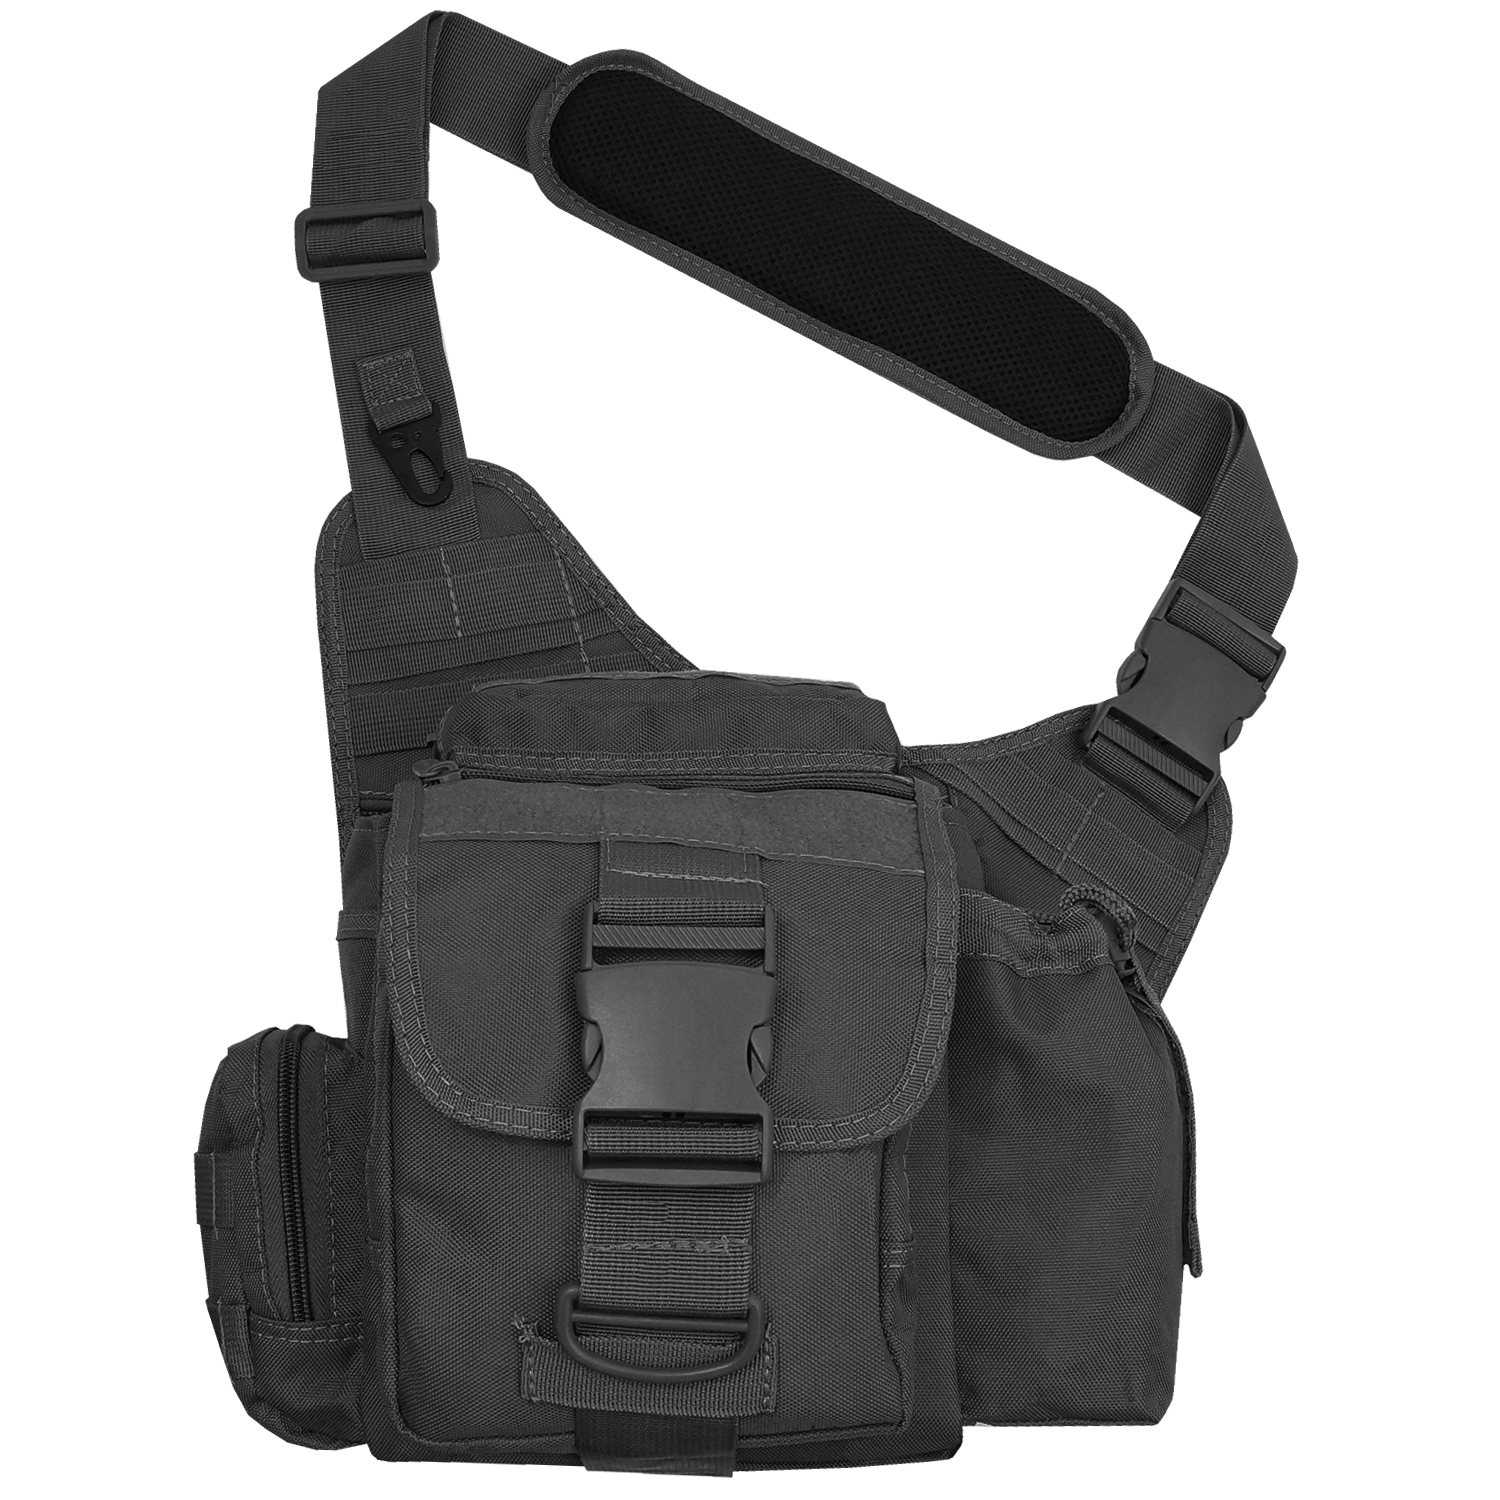 Every Day Carry Tactical Messenger MOLLE Side Sling Shoulder Bag w ...